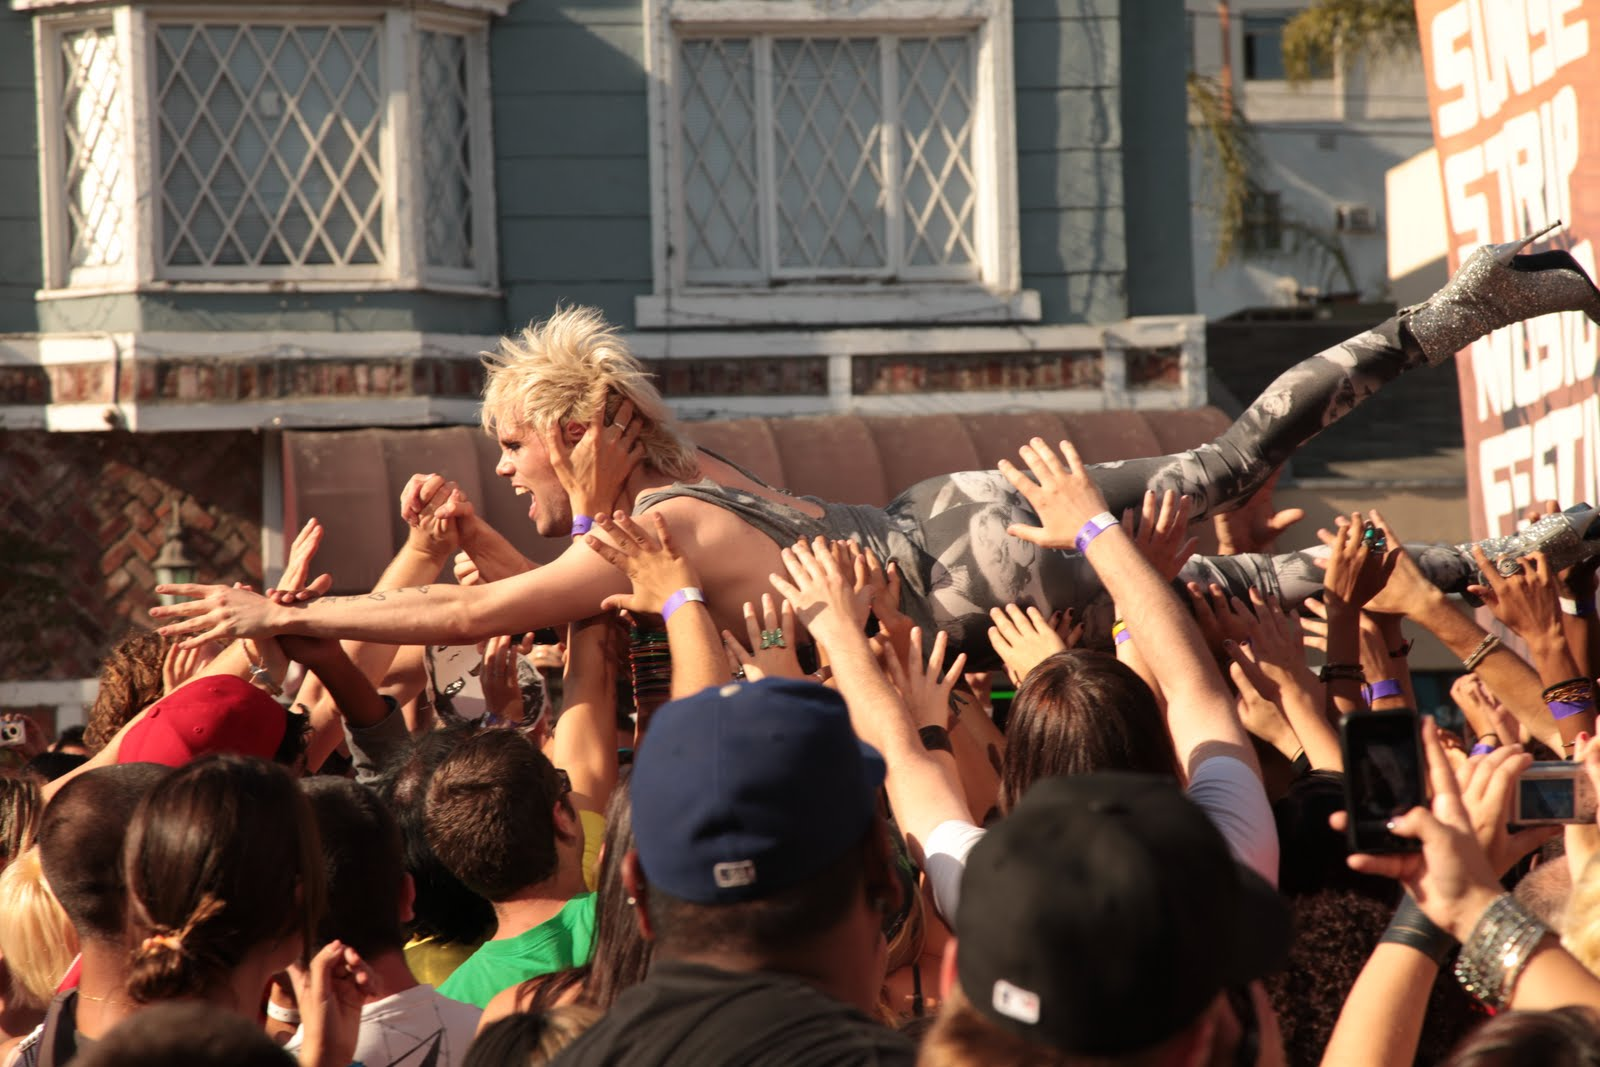 Crowd surfing stripped woman